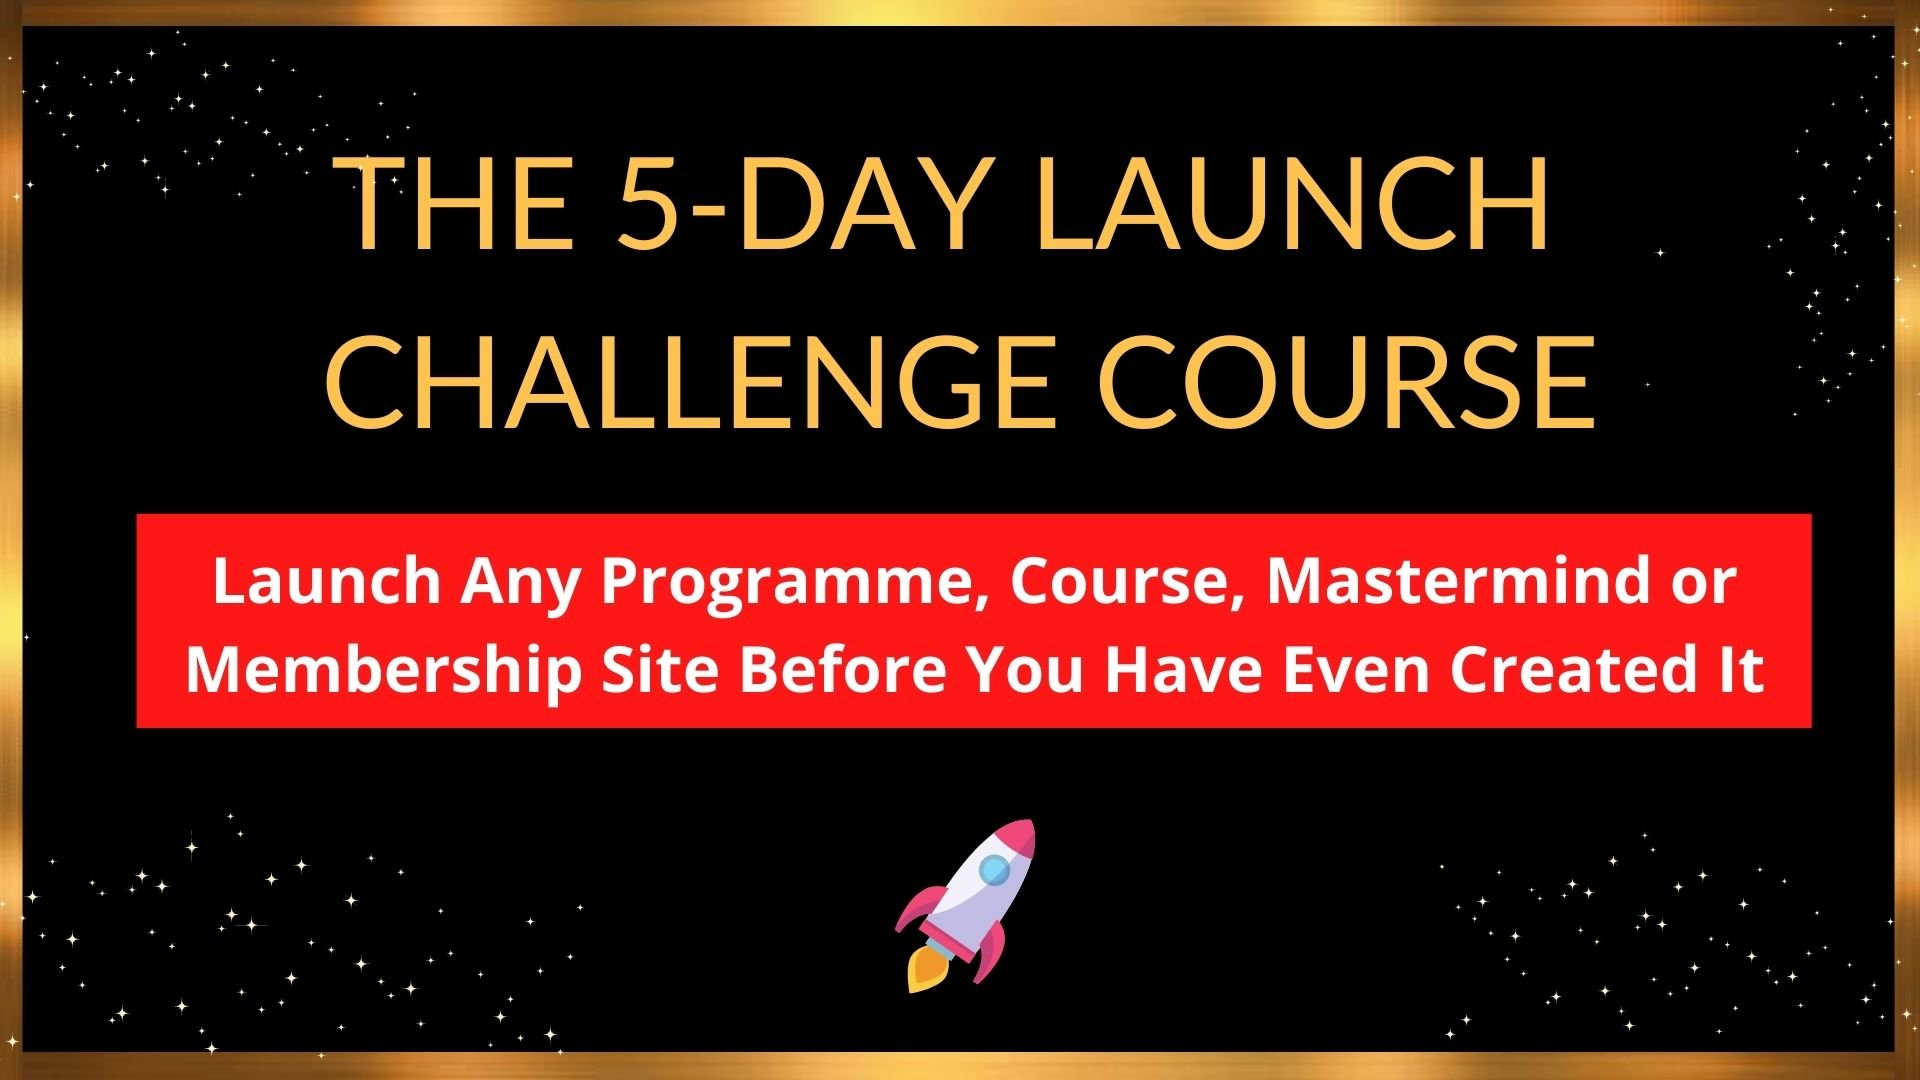 5 Day Launch Challenge Course